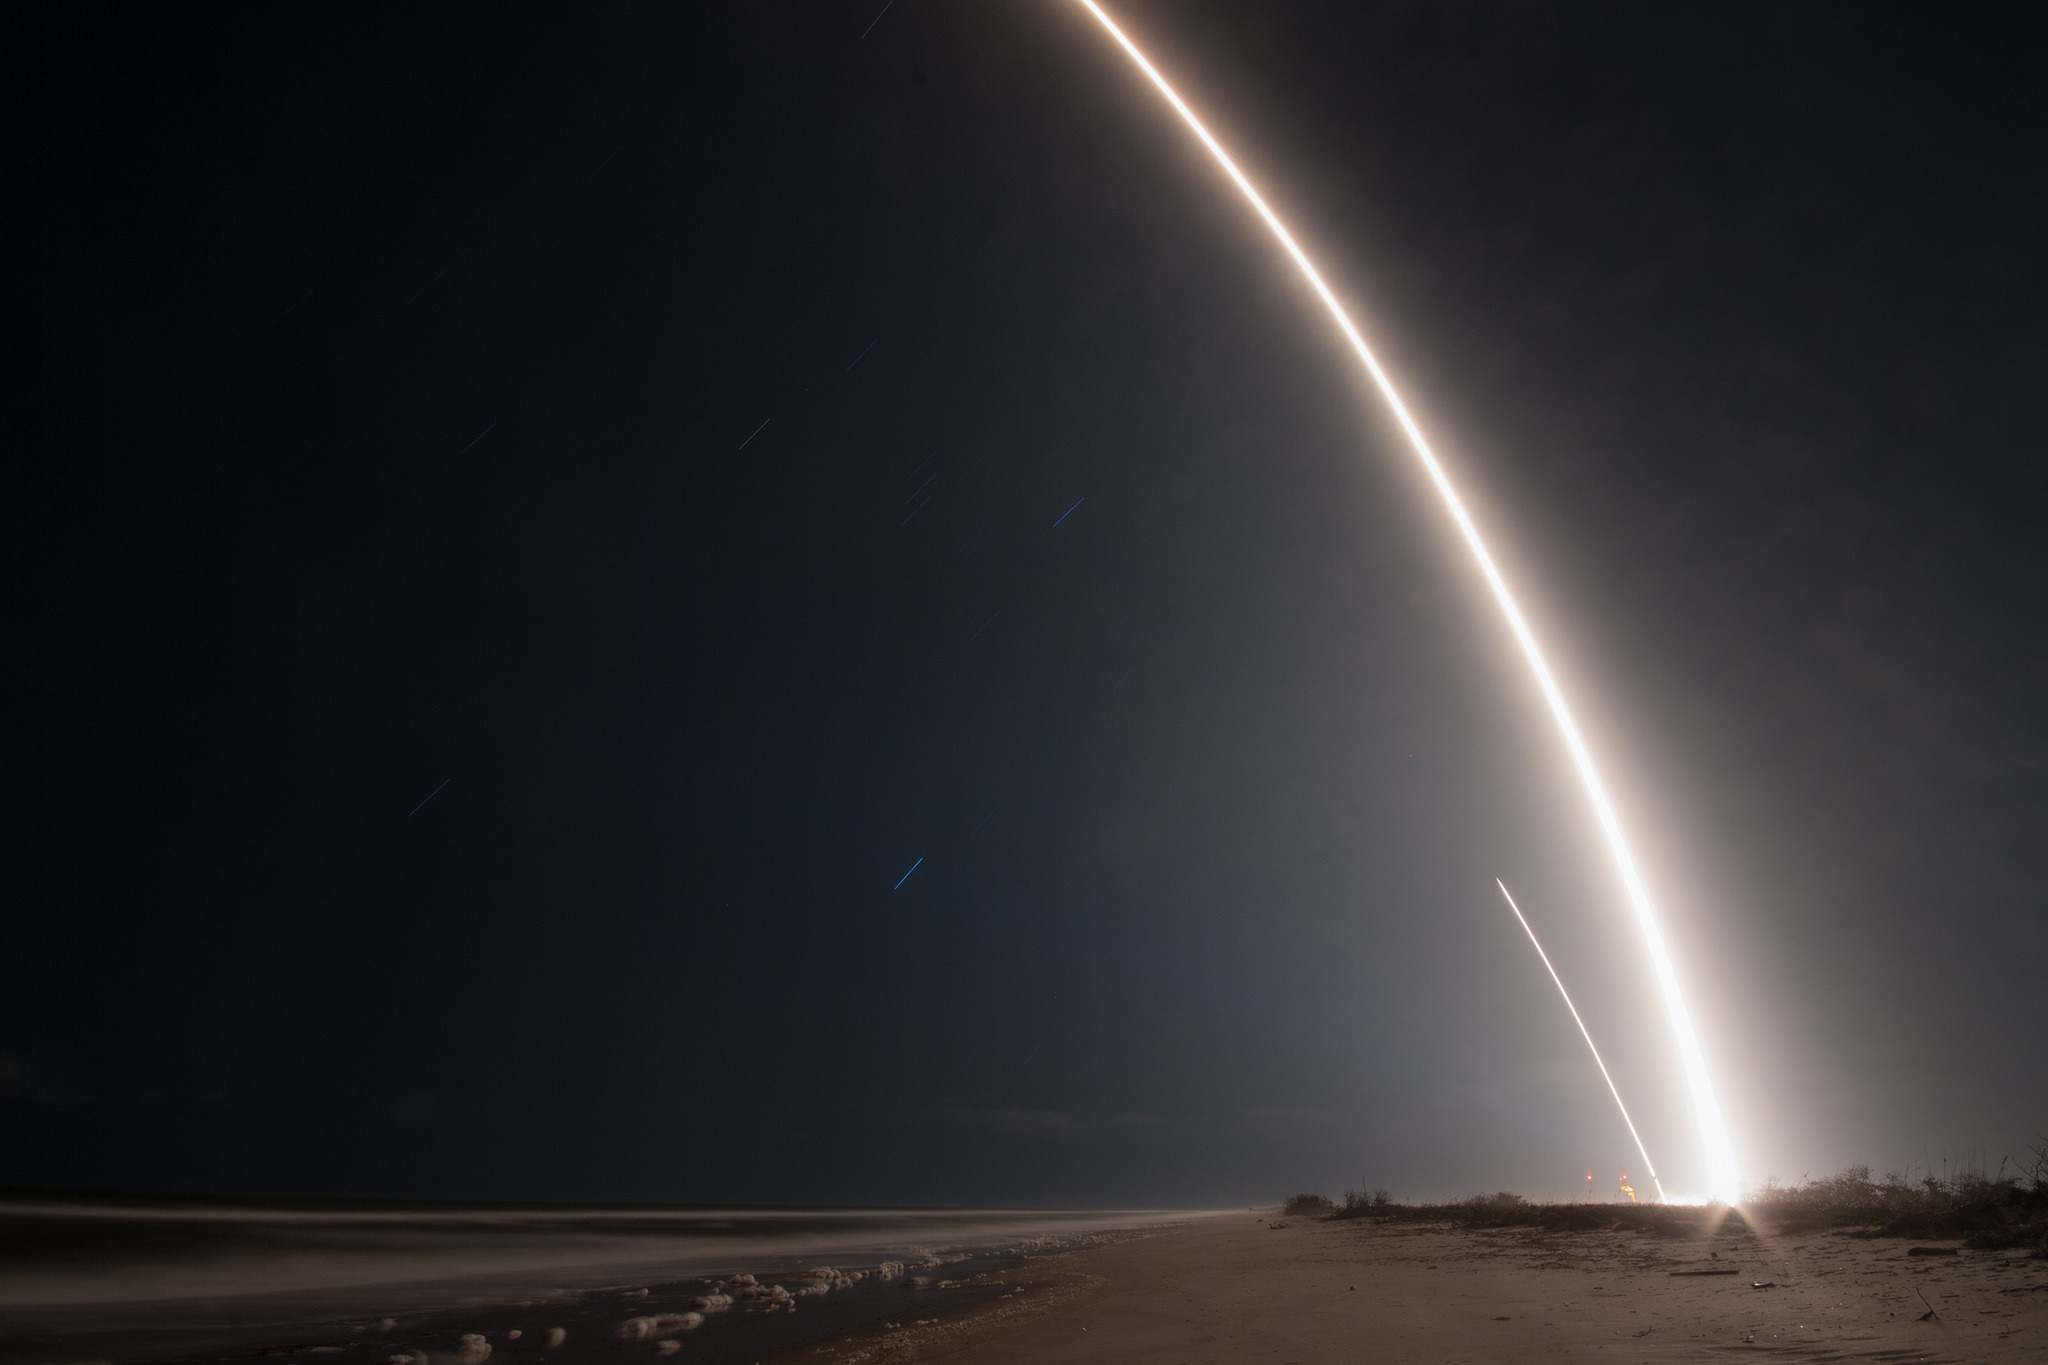 The 45th Space Wing supported the SpaceX launch of the Zuma spacecraft from Space Launch Complex 40 (SLC-40) at Cape Canaveral Air Force Station, Florida on Jan. 7, 2018. Following stage separation, Falcon 9's first stage landed at SpaceX's Landing Zone 1 (LZ-1) at Cape Canaveral Air Force Station, Florida. (Courtesy photo/SpaceX)